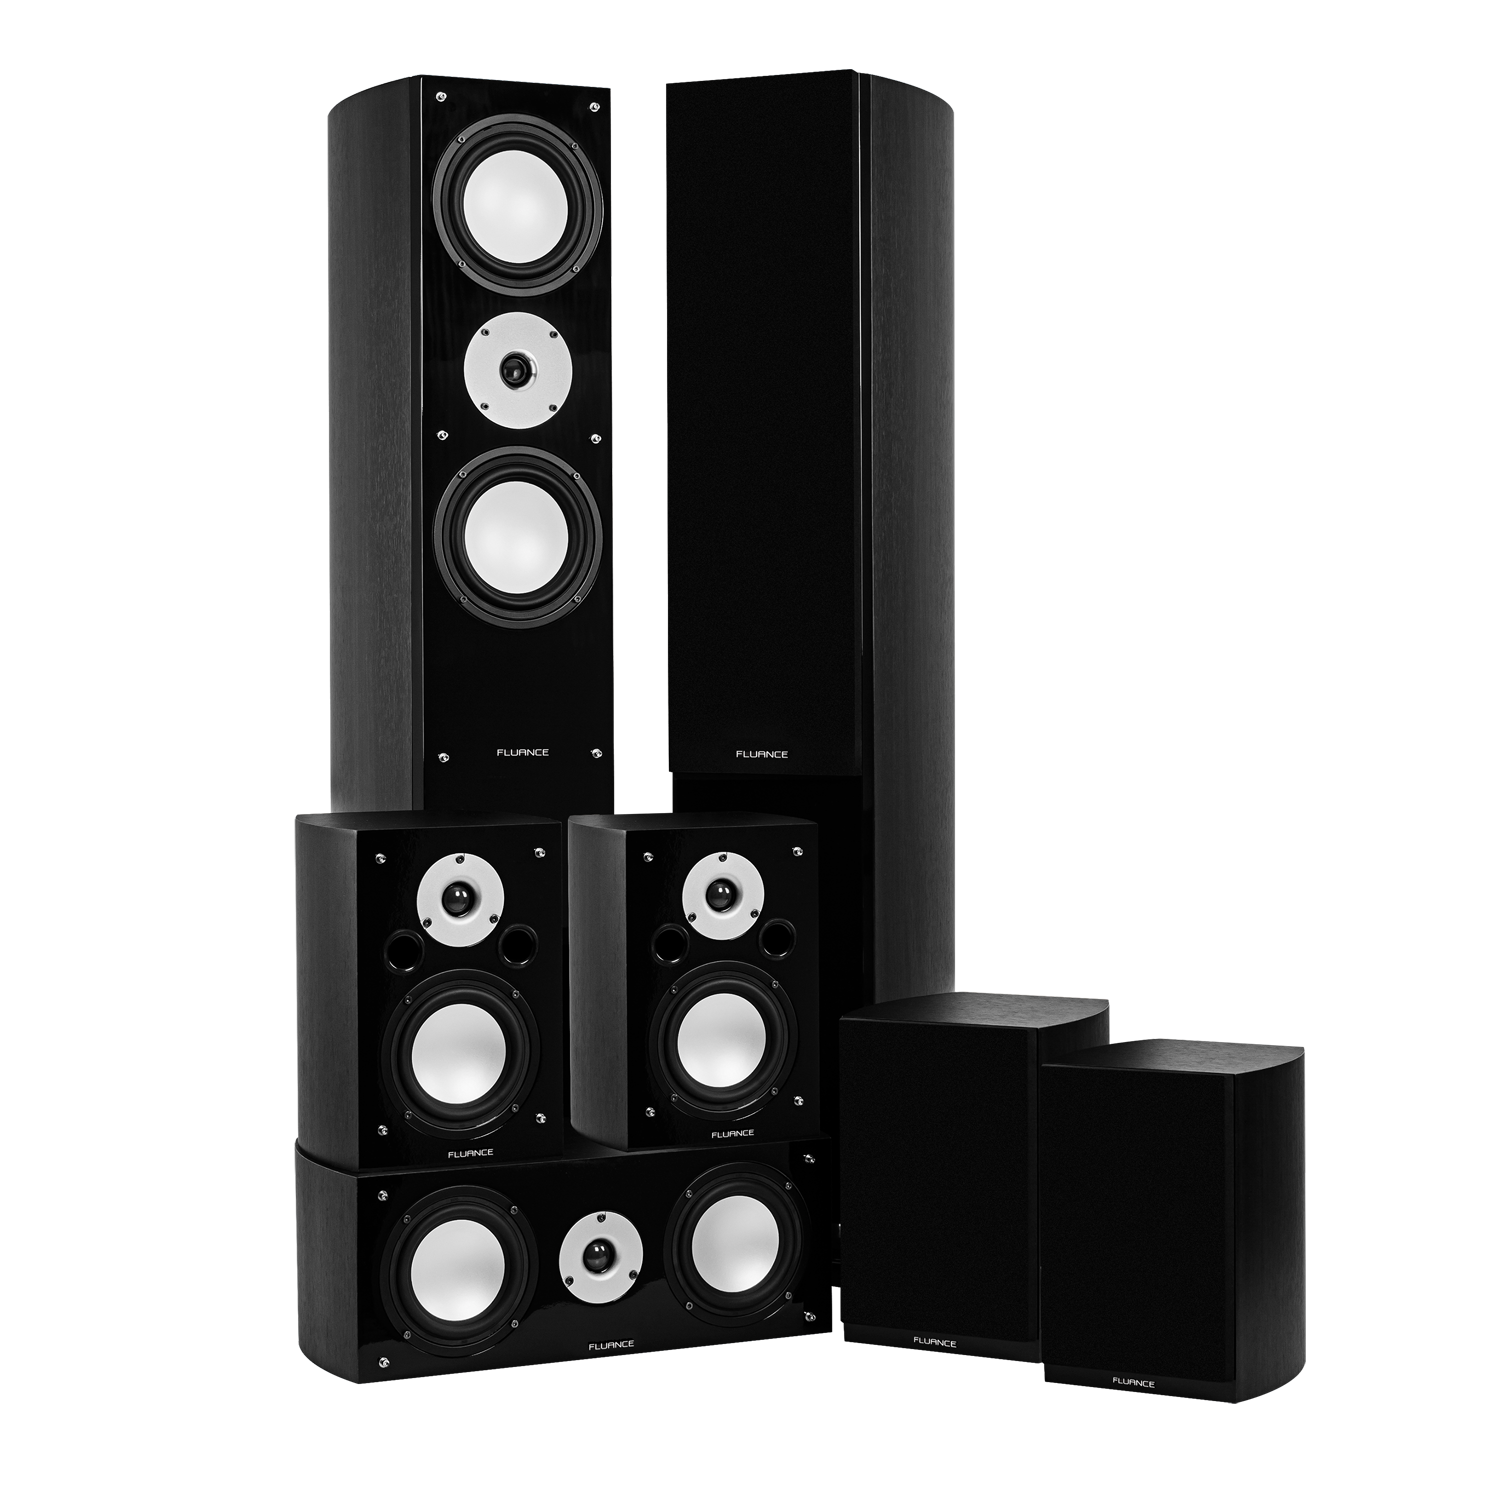 Reference Series Black Ash Surround Sound Home Theater 7.0 Channel Speaker System